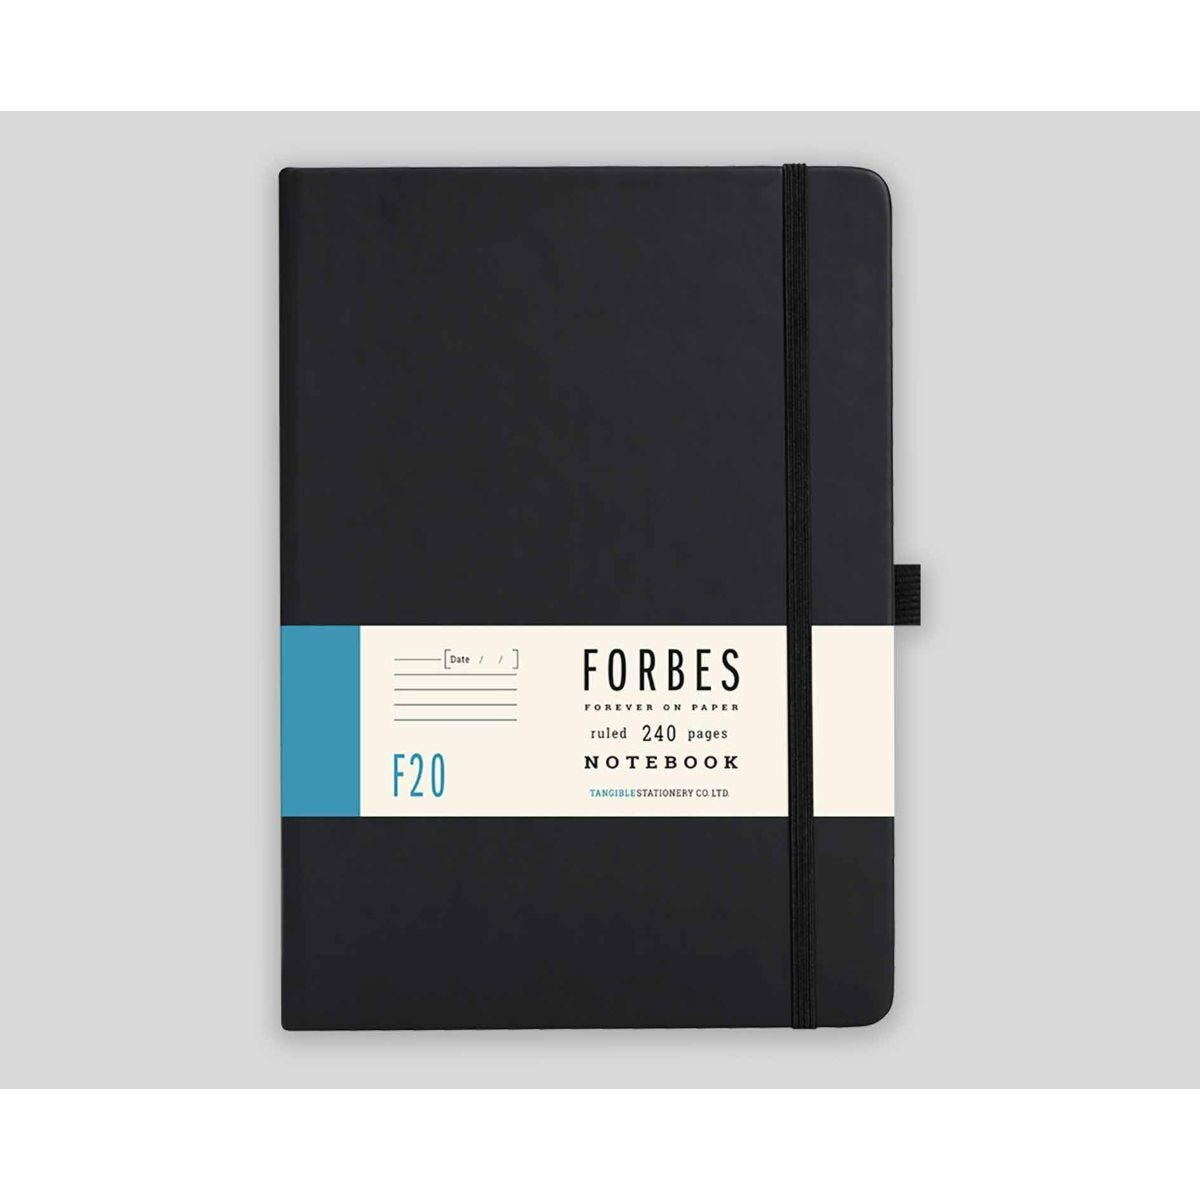 FORBES Classic Hard Cover Notebook Ruled A5 240 Pages